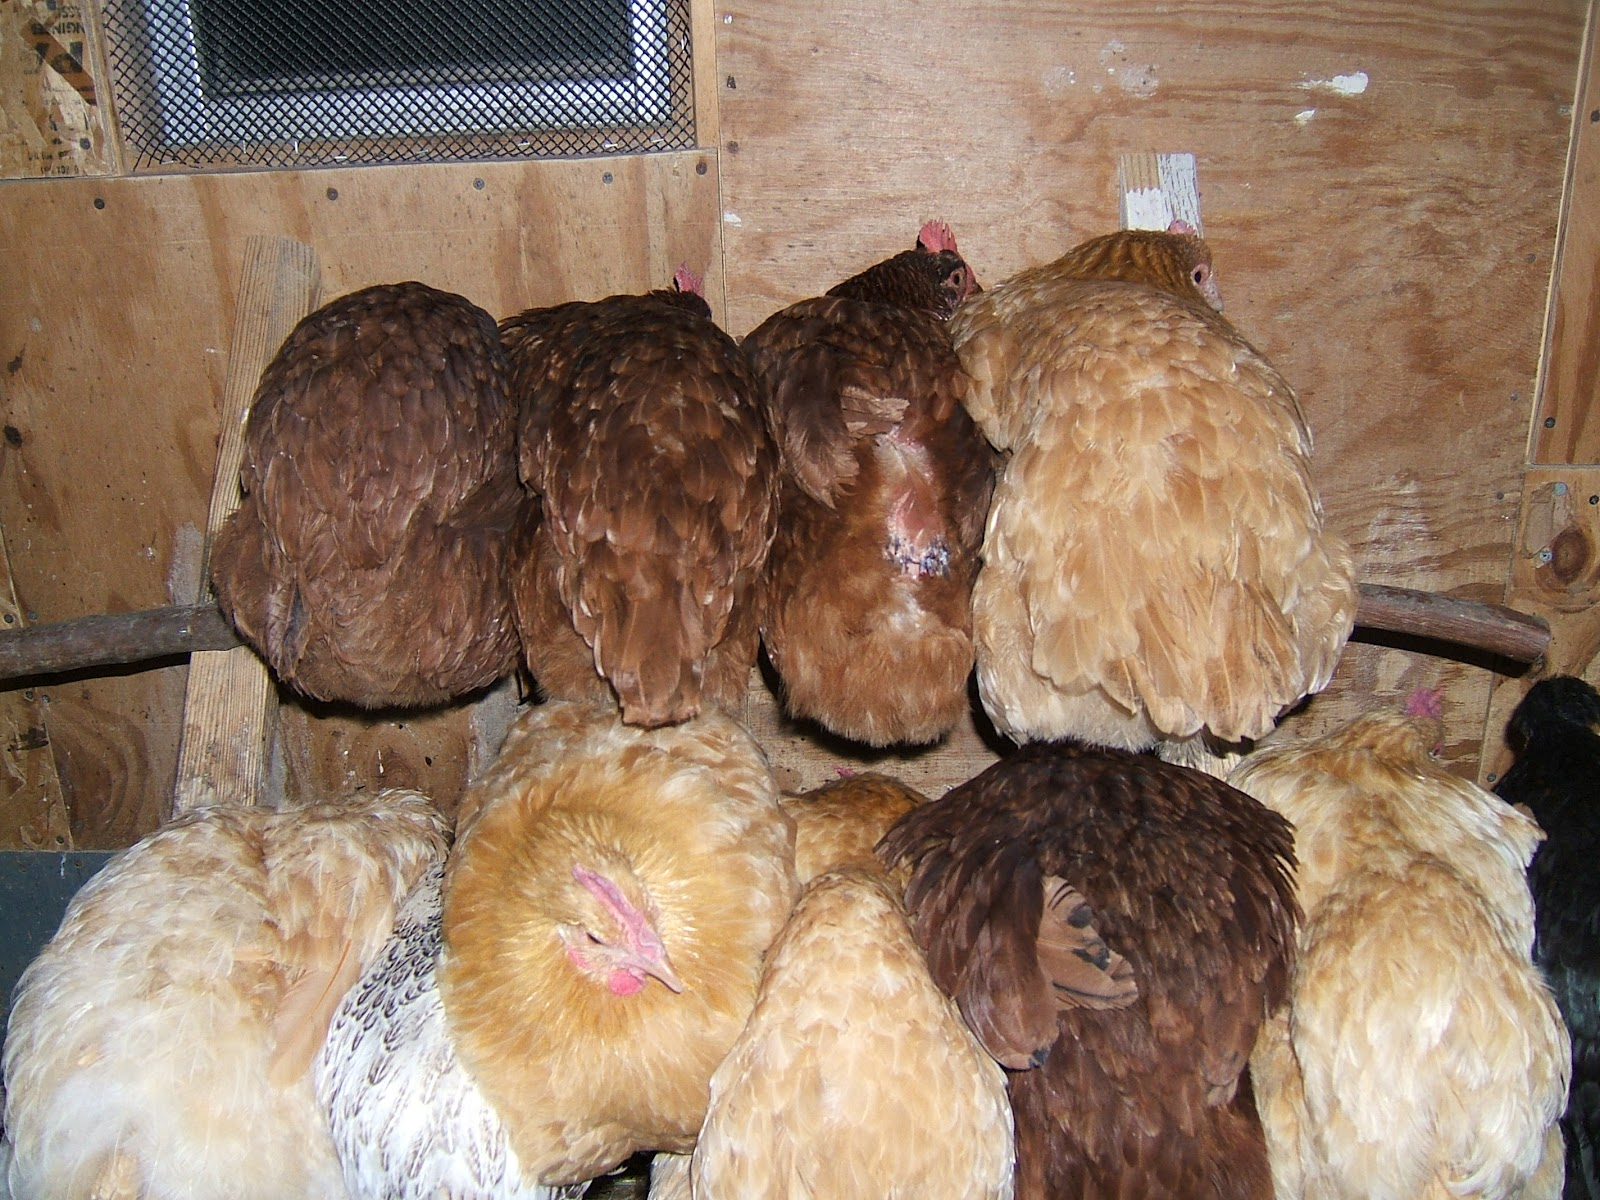 roosting solutions community chickens